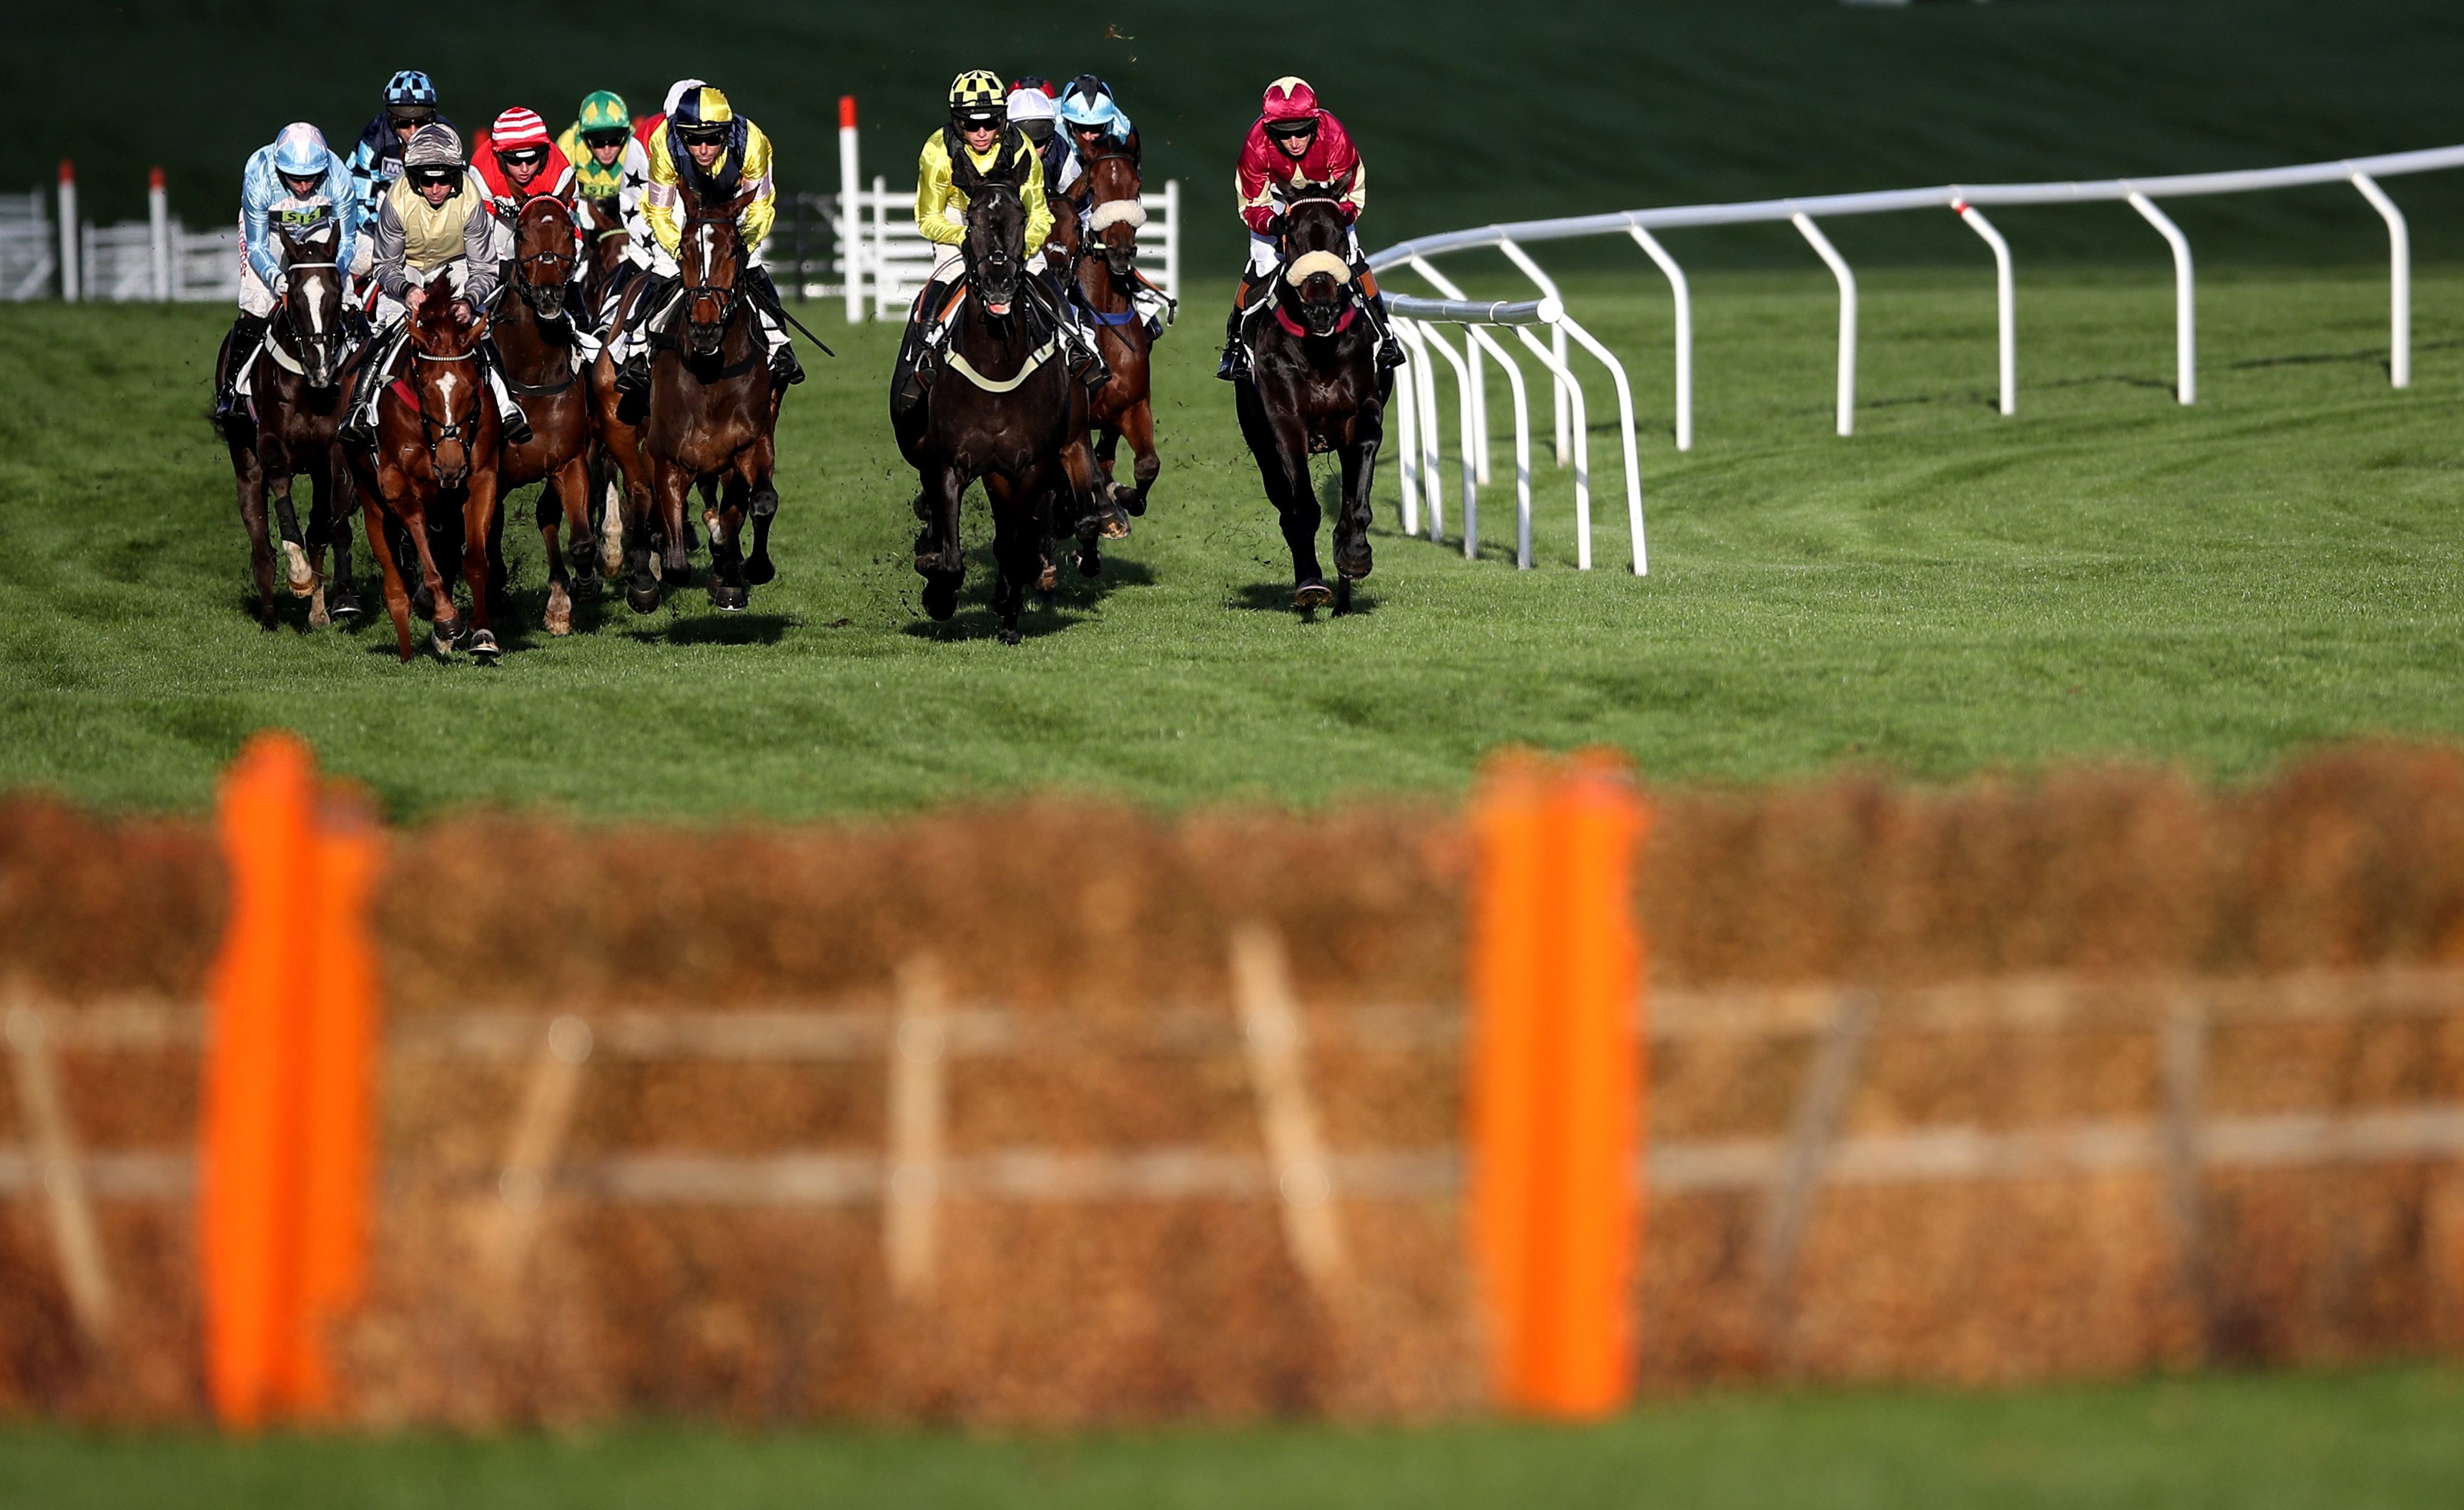 Horse Racing Betting Tips: Wednesday at Market Rasen